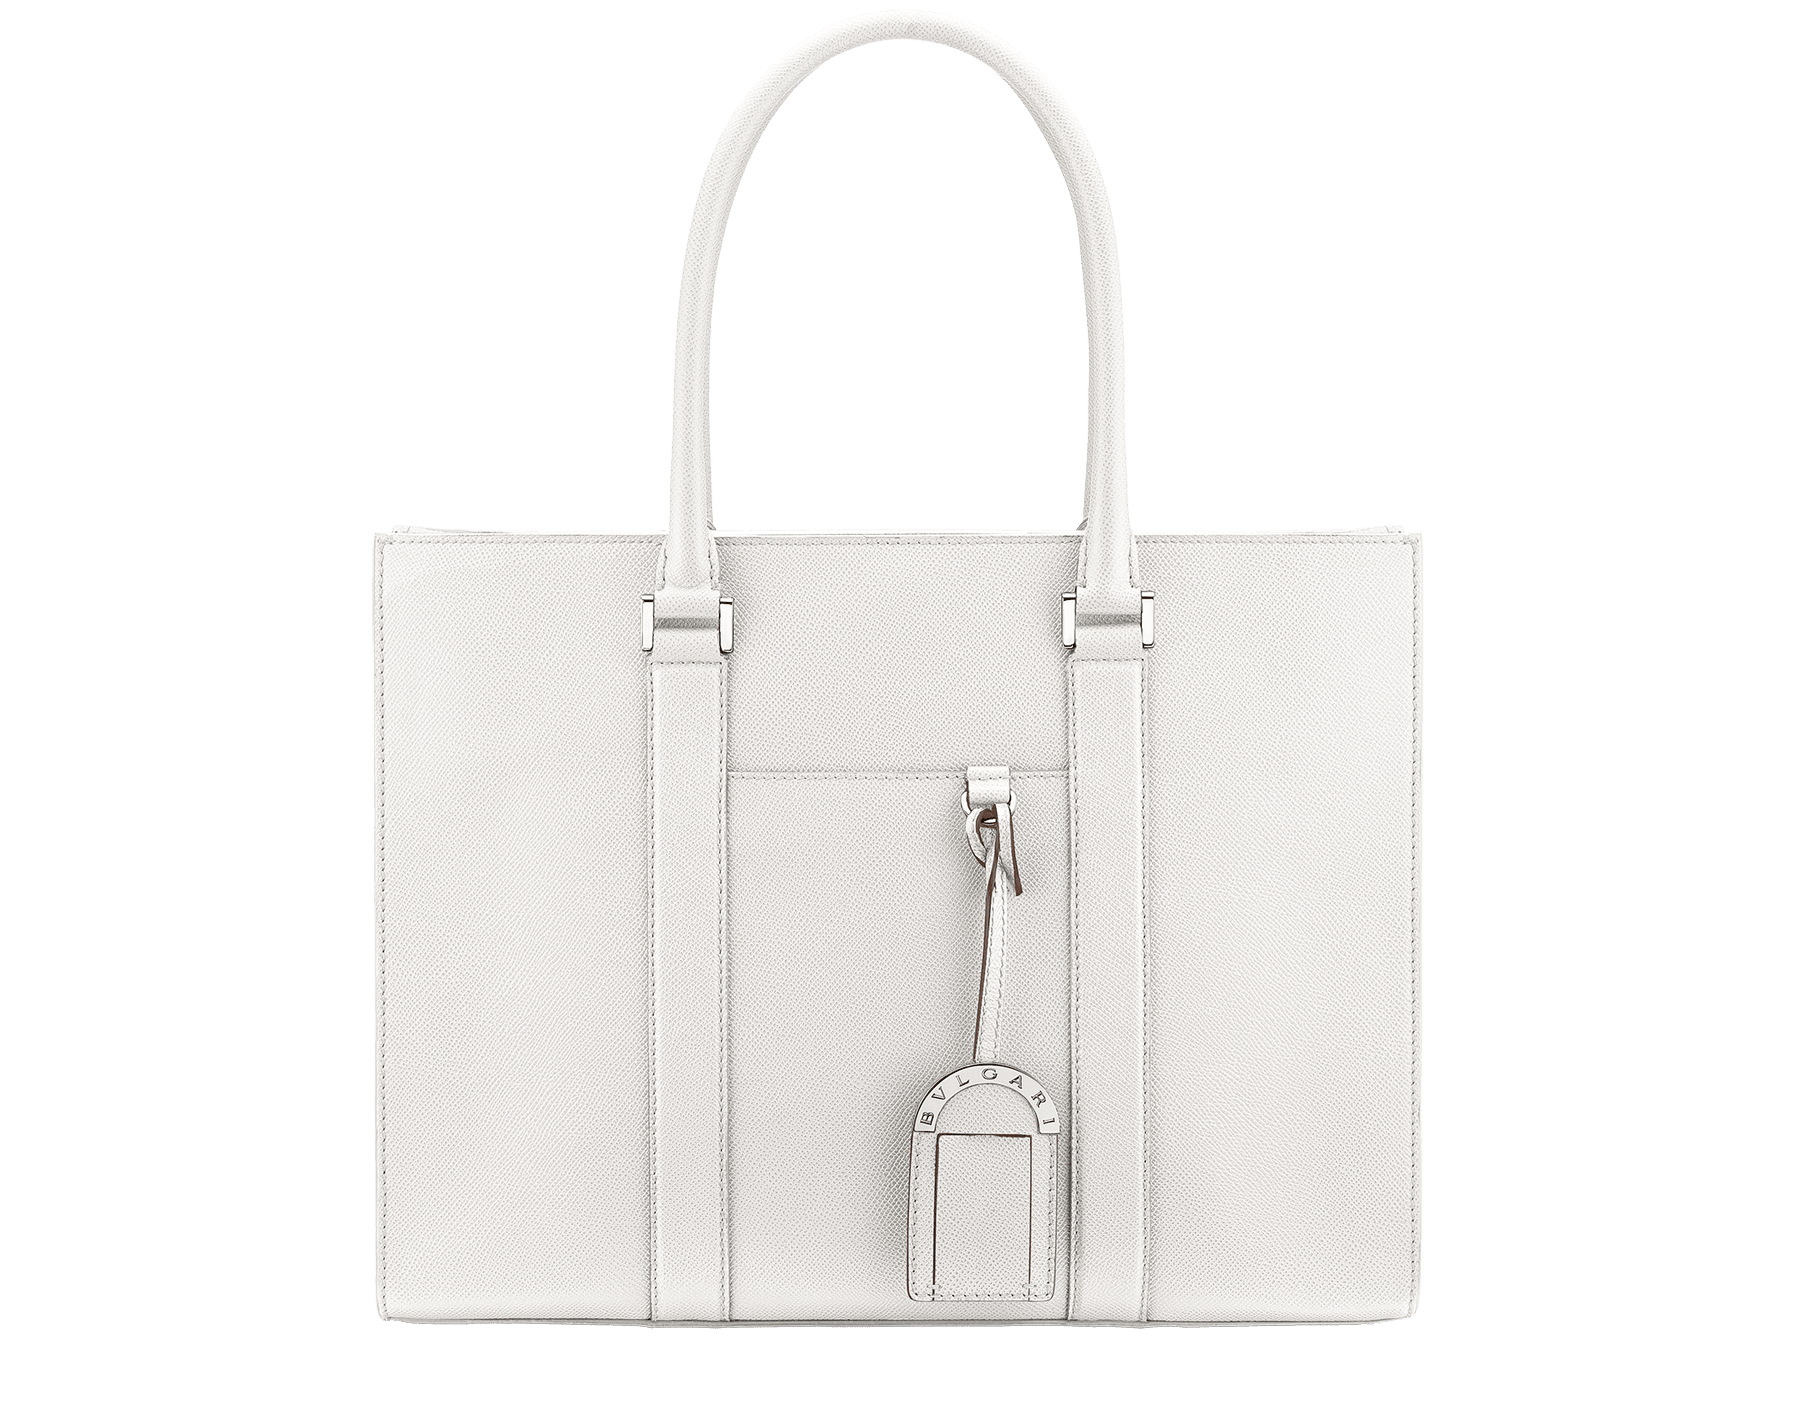 BVLGARI BVLGARI men's tote bag in white agate grain calf leather with brass palladium plated hardware. 288474 image 1